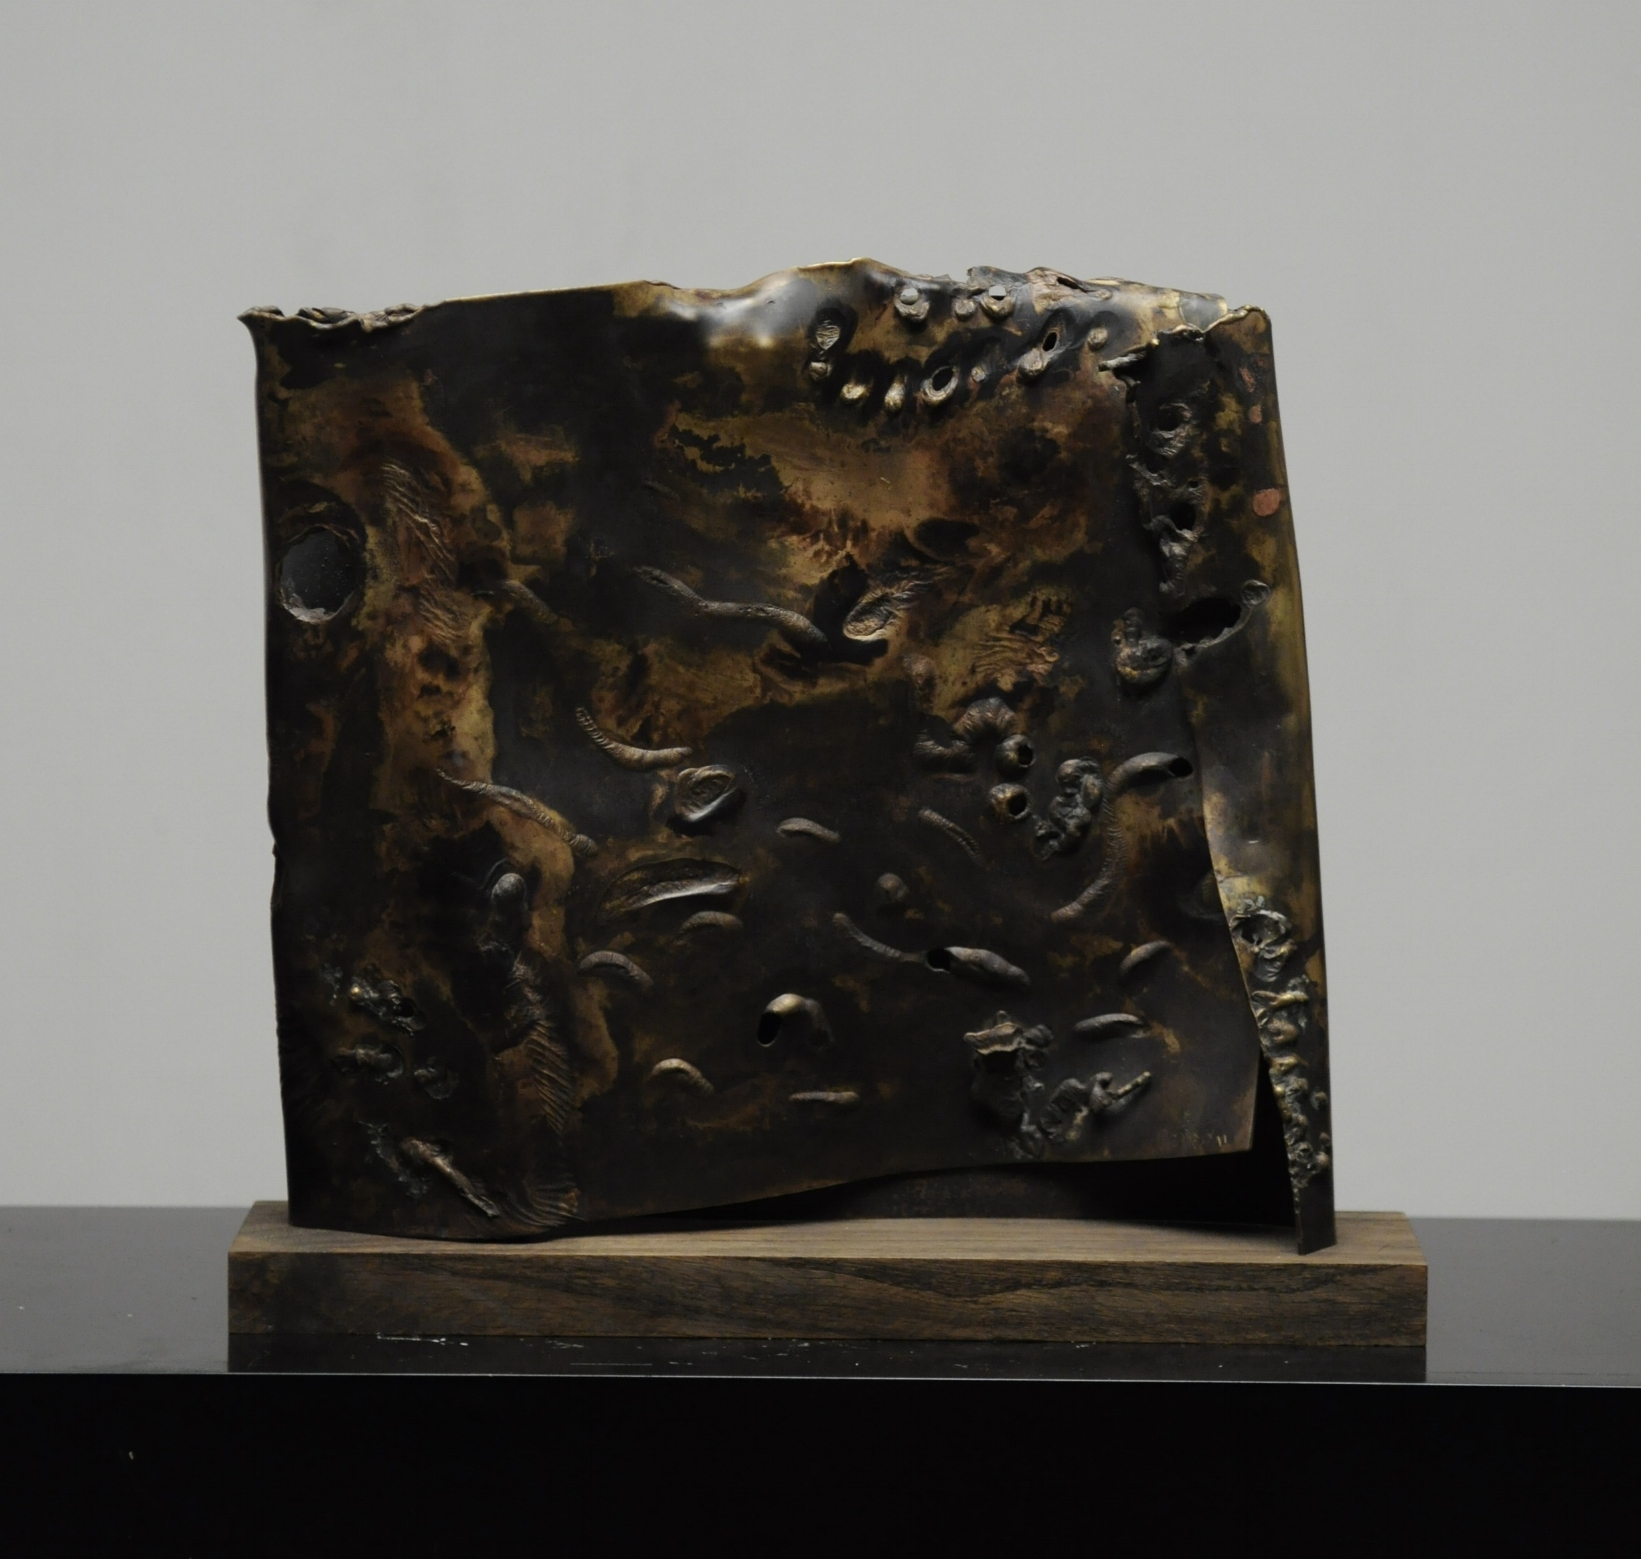 brass sculpture ''Through time''